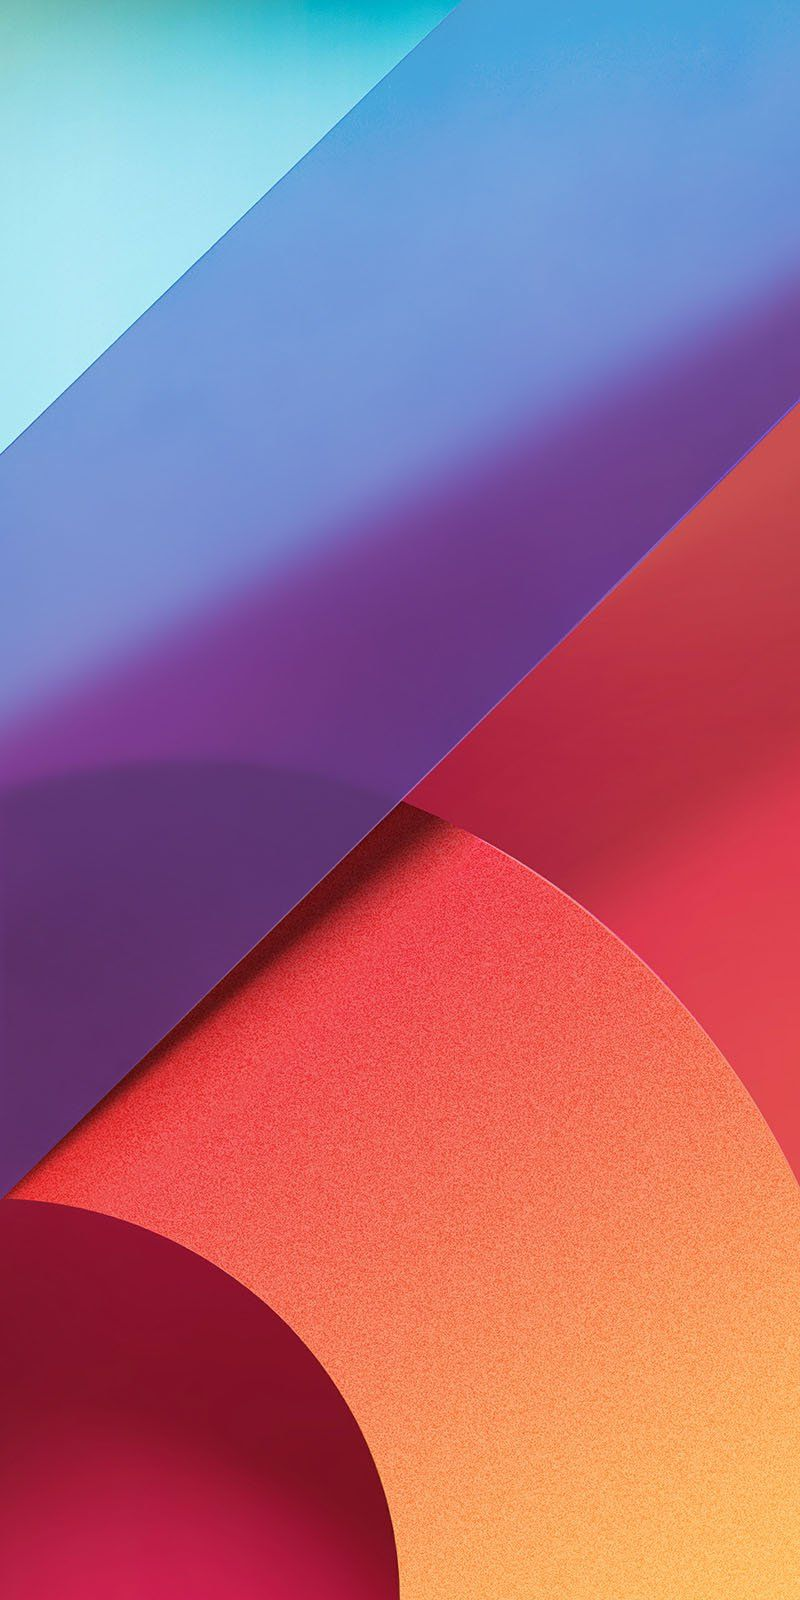 The Lg G6 S Wallpaper Is Actually A Photo Cool Wallpapers For Phones Stock Wallpaper Abstract Wallpaper Backgrounds